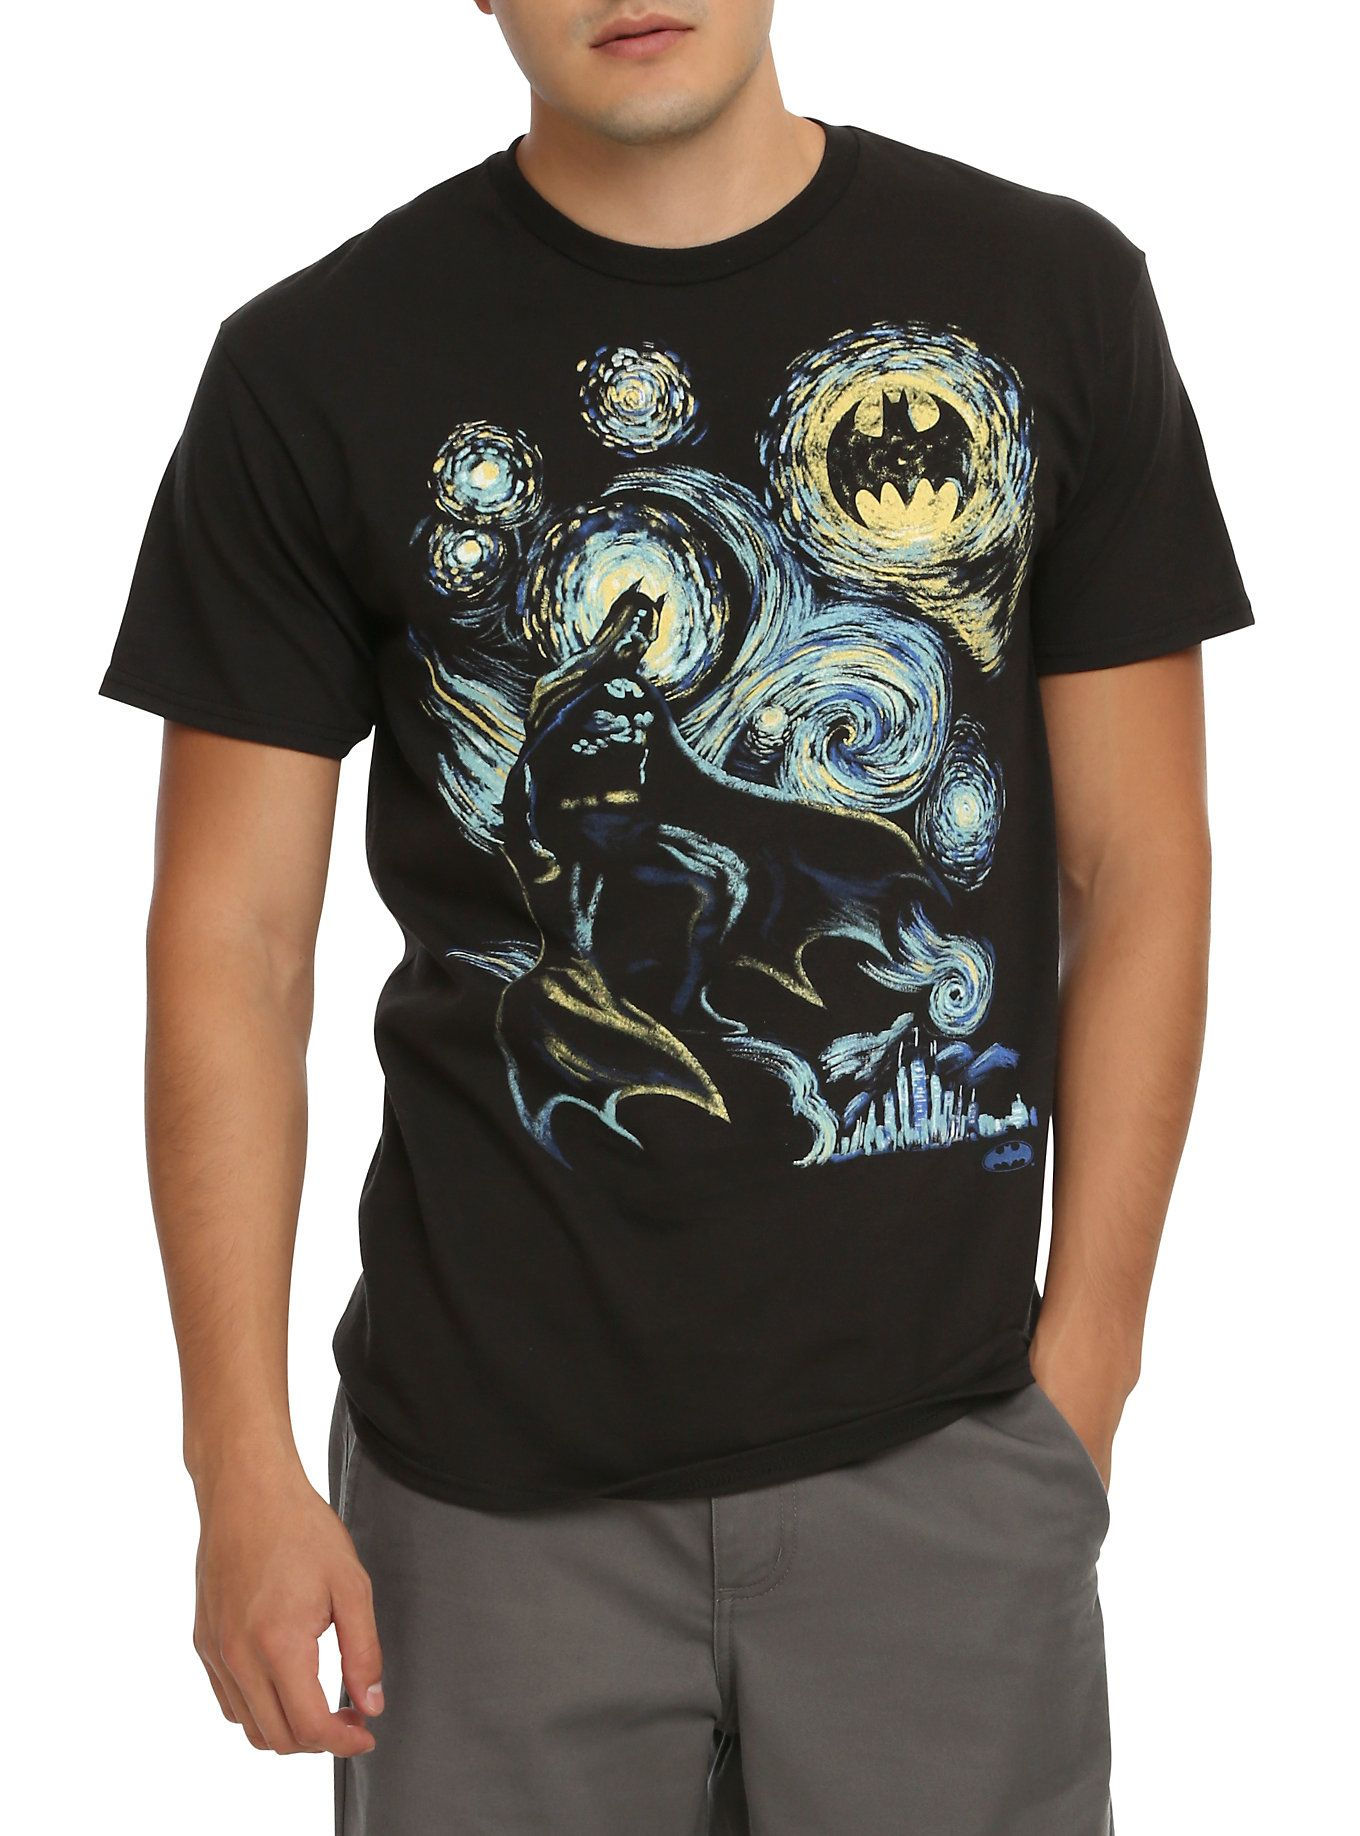 Black t shirt batman - Black T Shirt From Dc Comics With The Starry Night Inspired Batman Design Dry Low Imported Listed In Men S Sizes